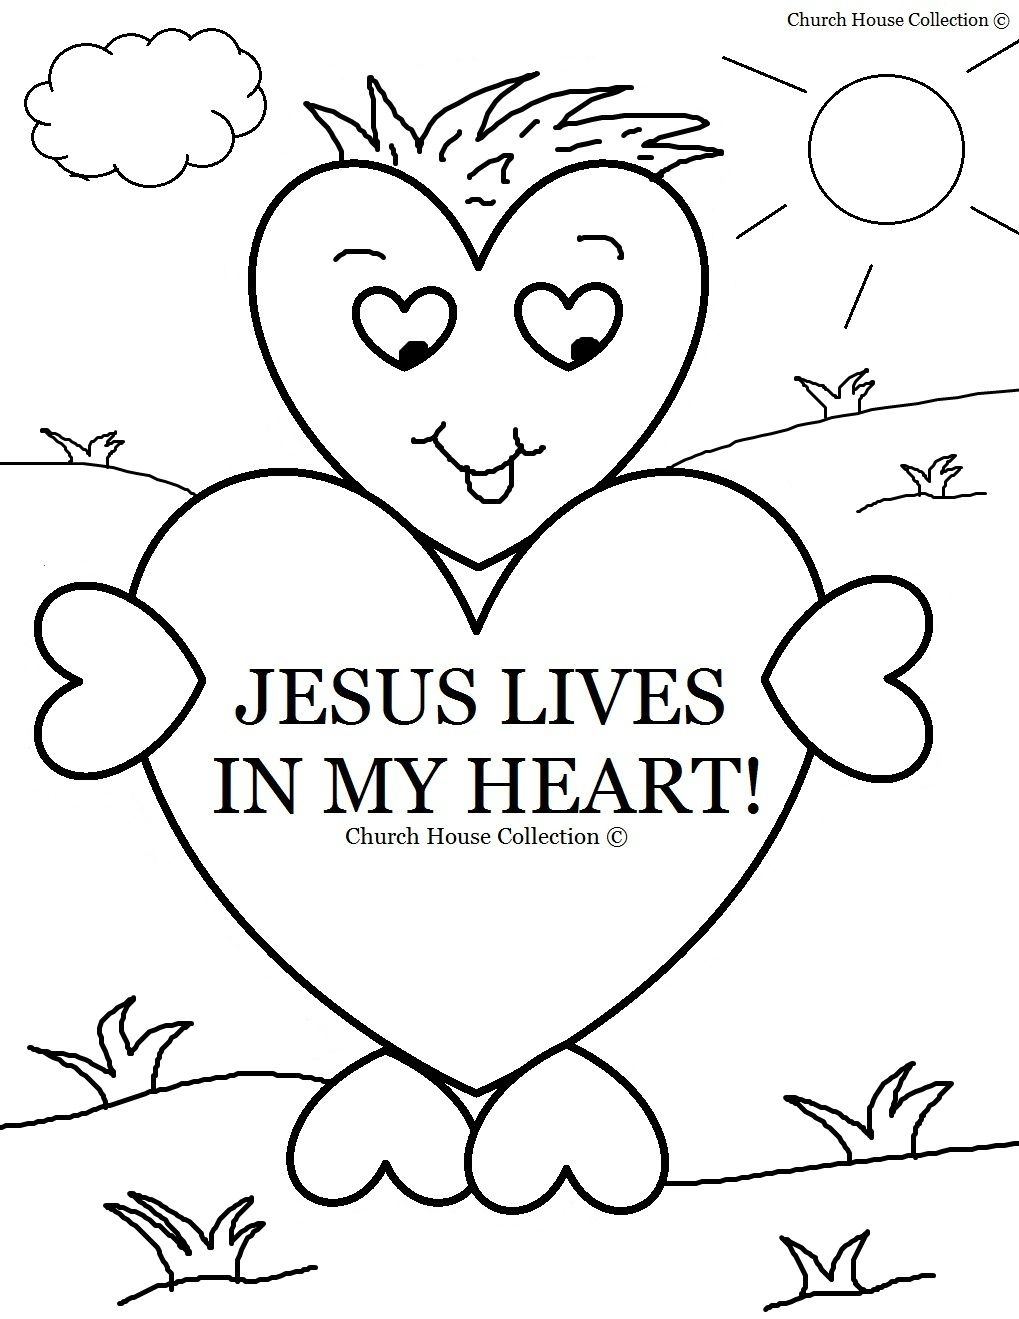 - Church House Collection Blog: Jesus Lives In My Heart Coloring